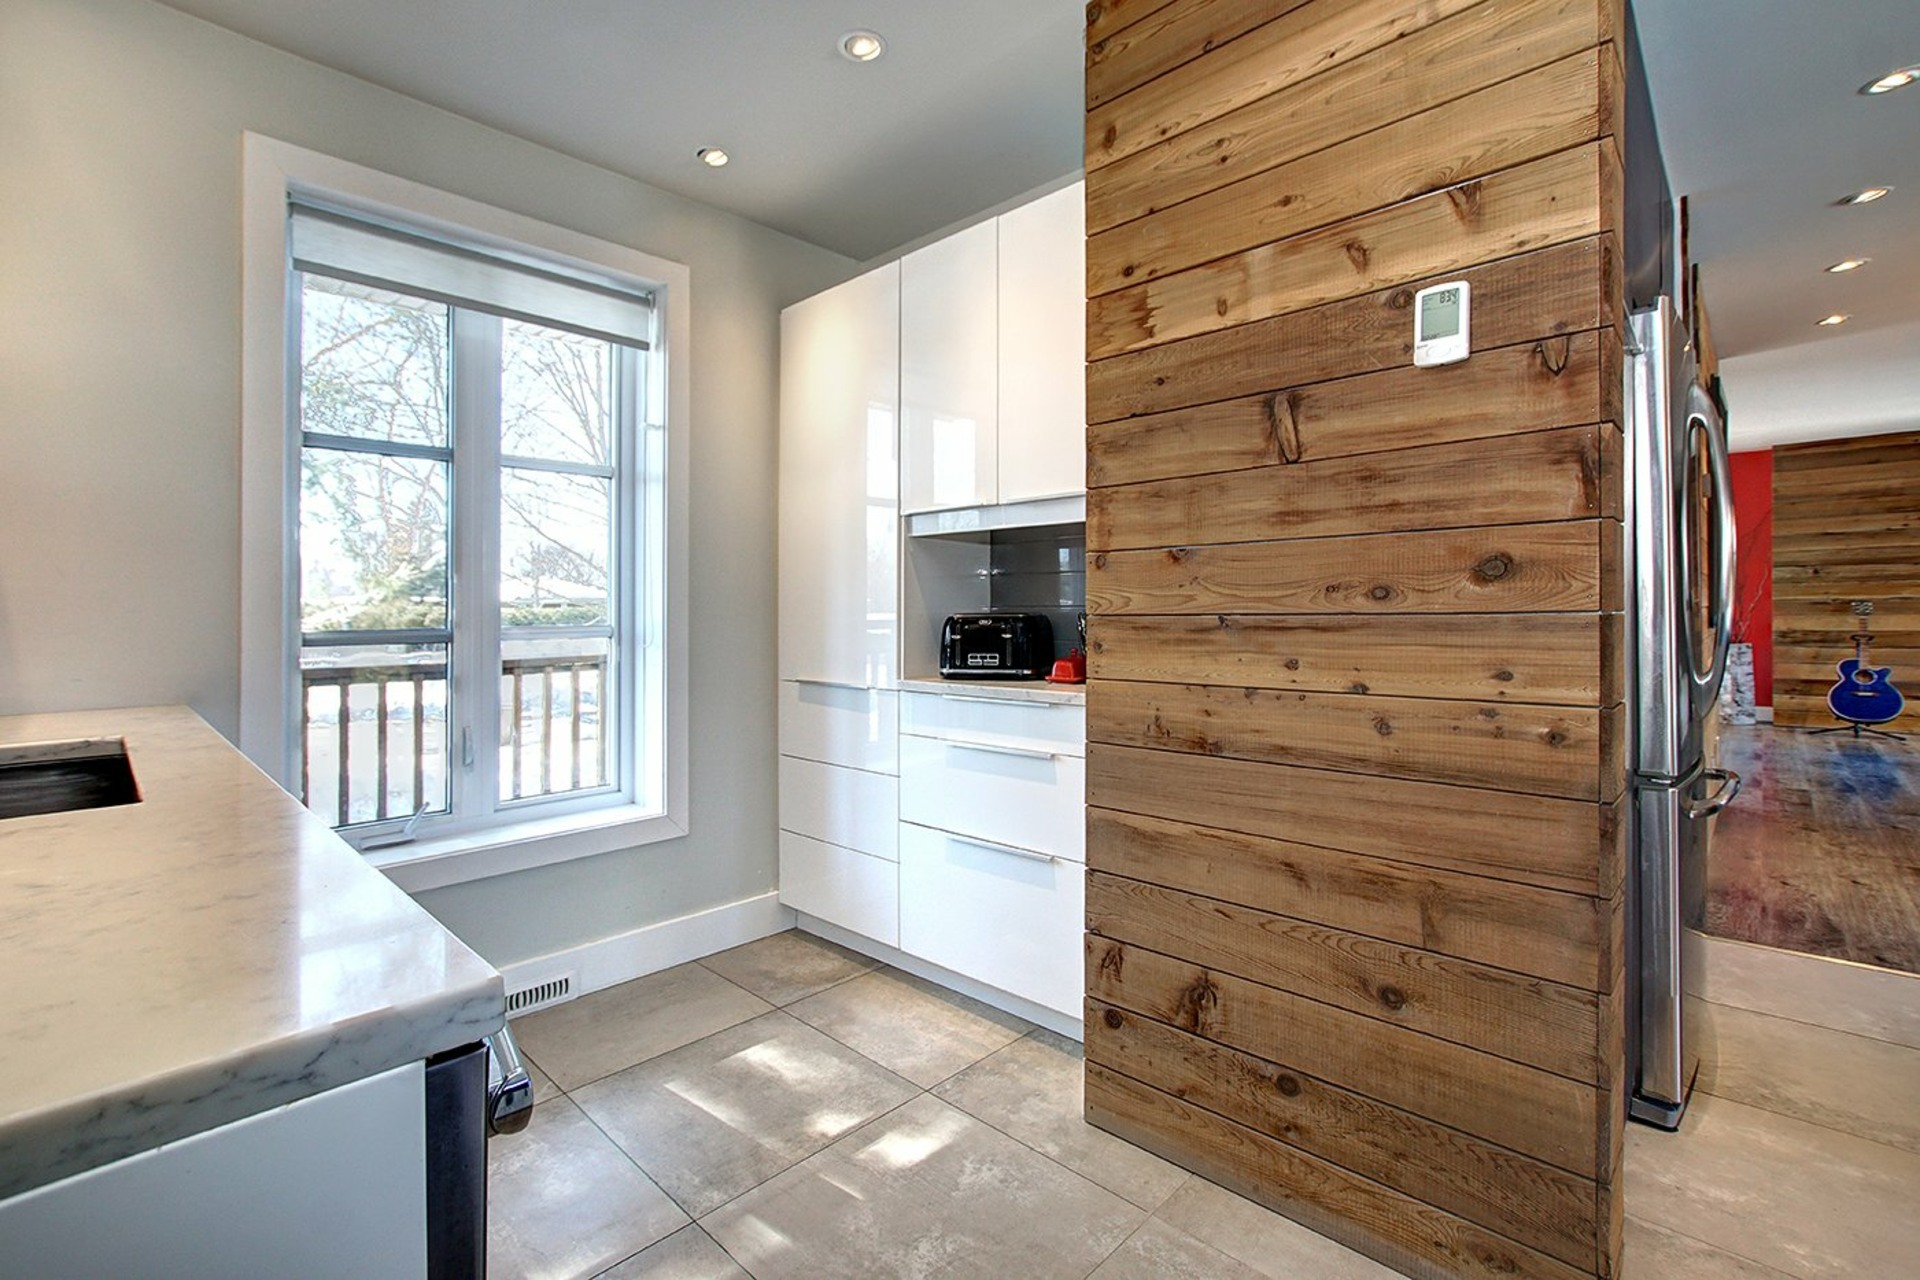 image 9 - House For sale Repentigny Repentigny  - 16 rooms